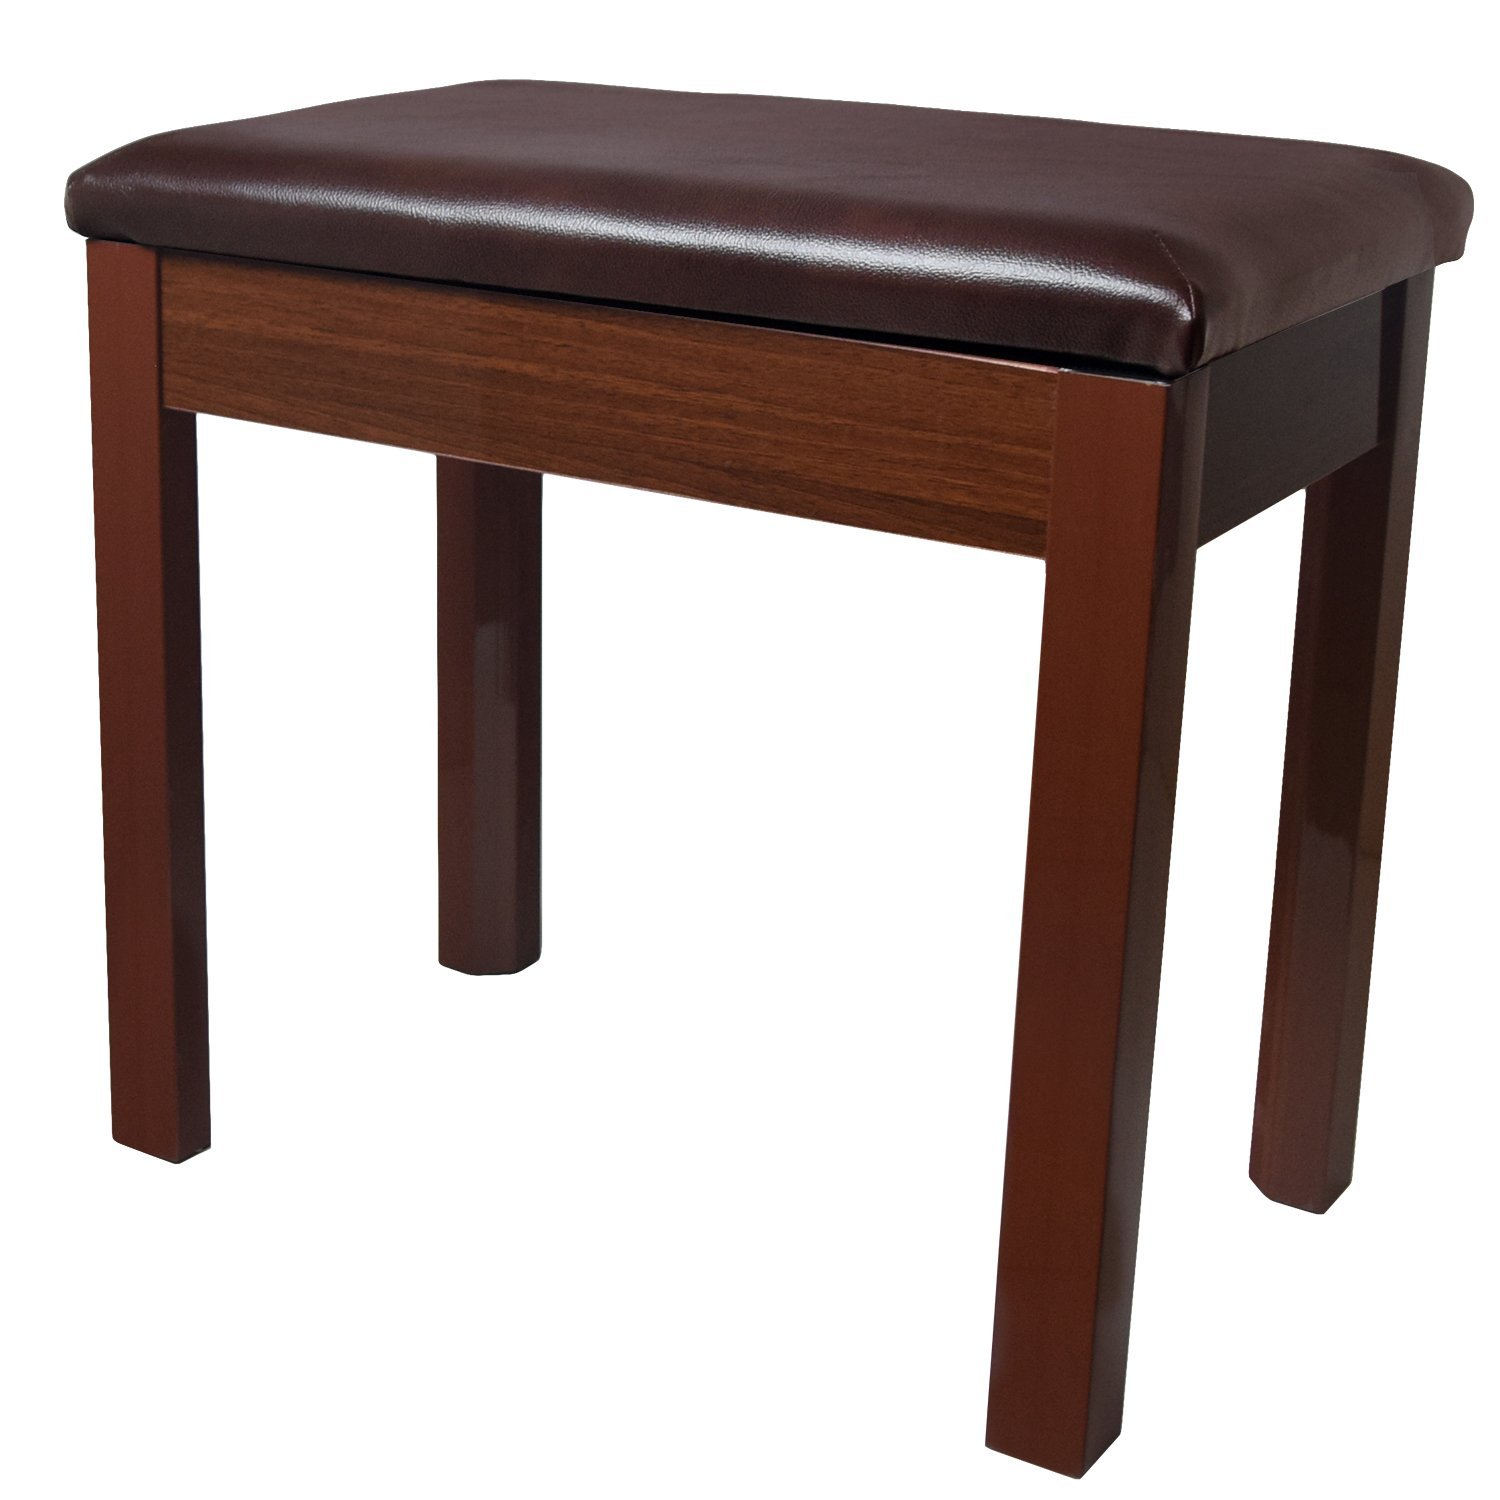 ChromaCast Padded Wooden Piano Bench, Walnut CC-WBENCH-WAL